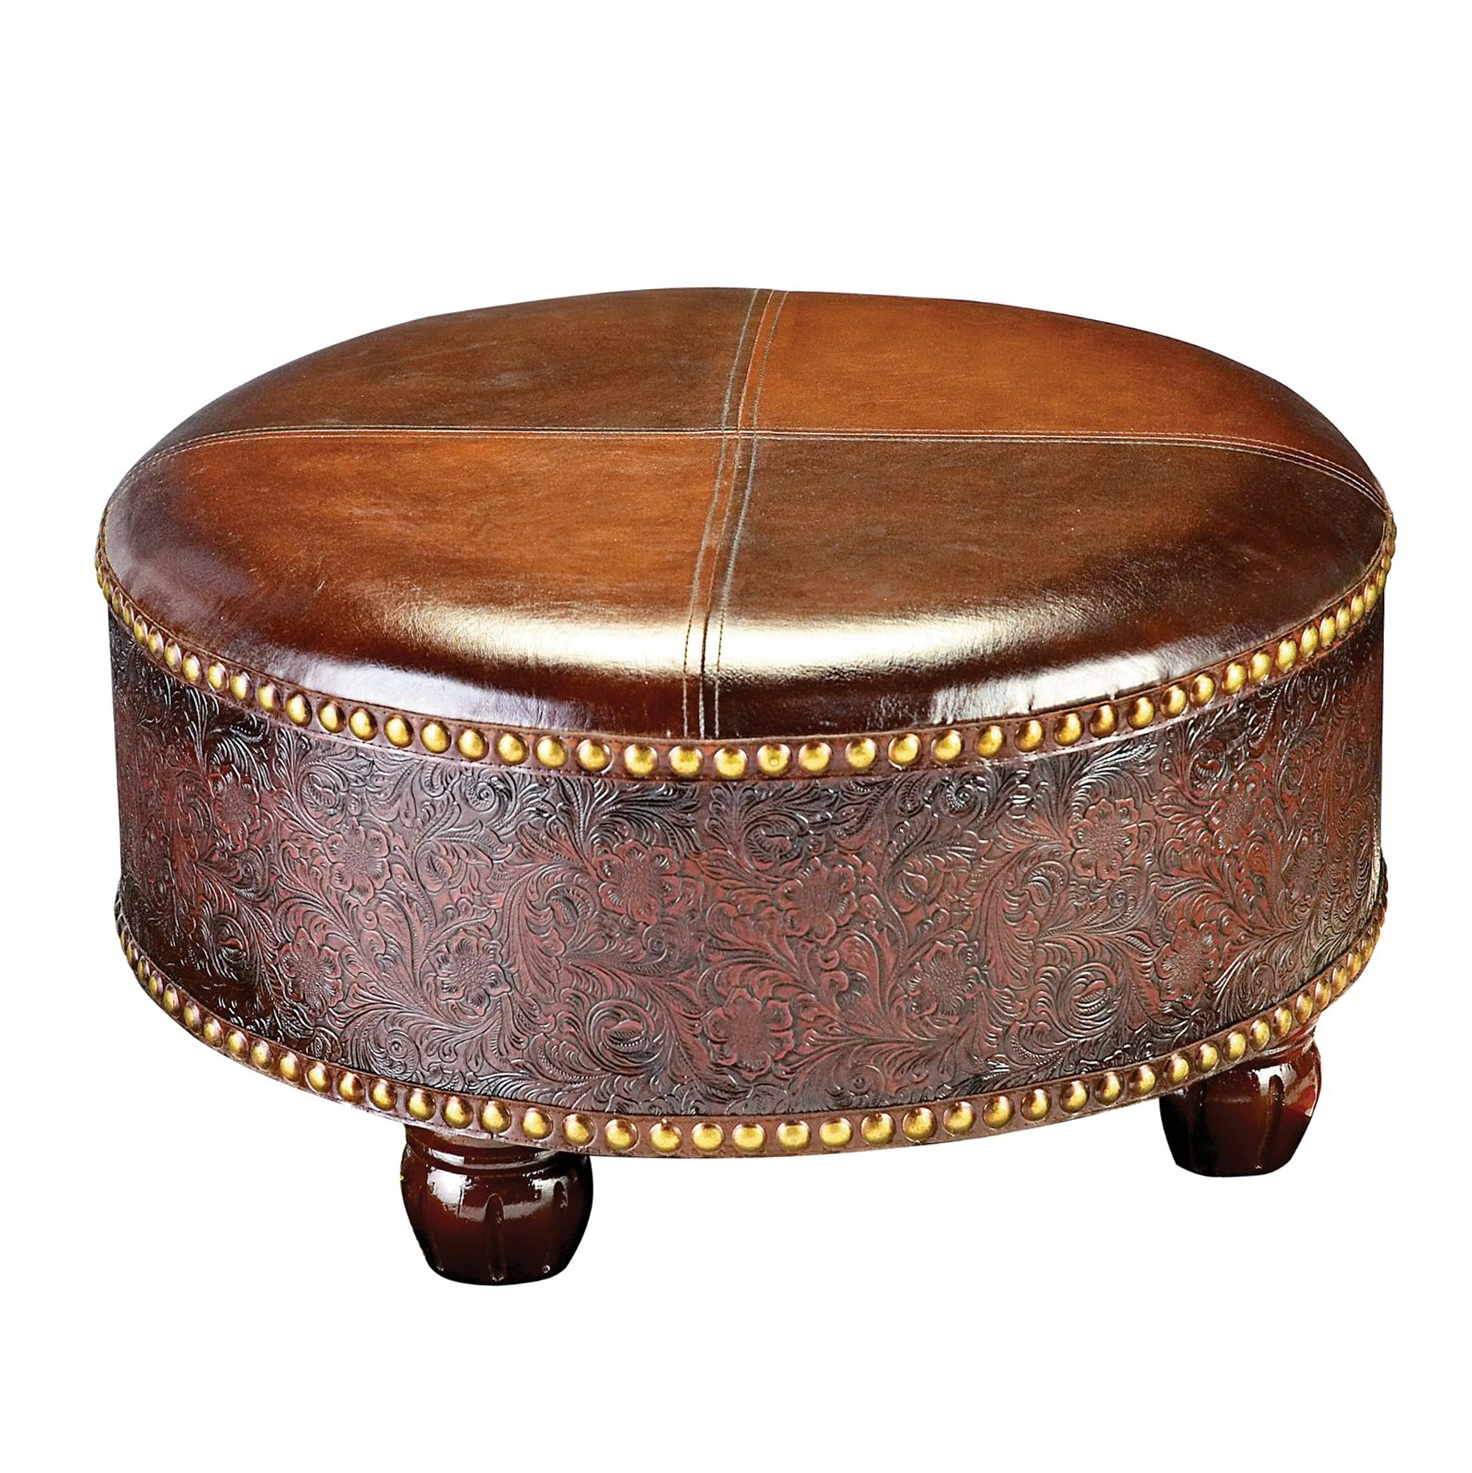 Large Round Coffee Table Ottoman